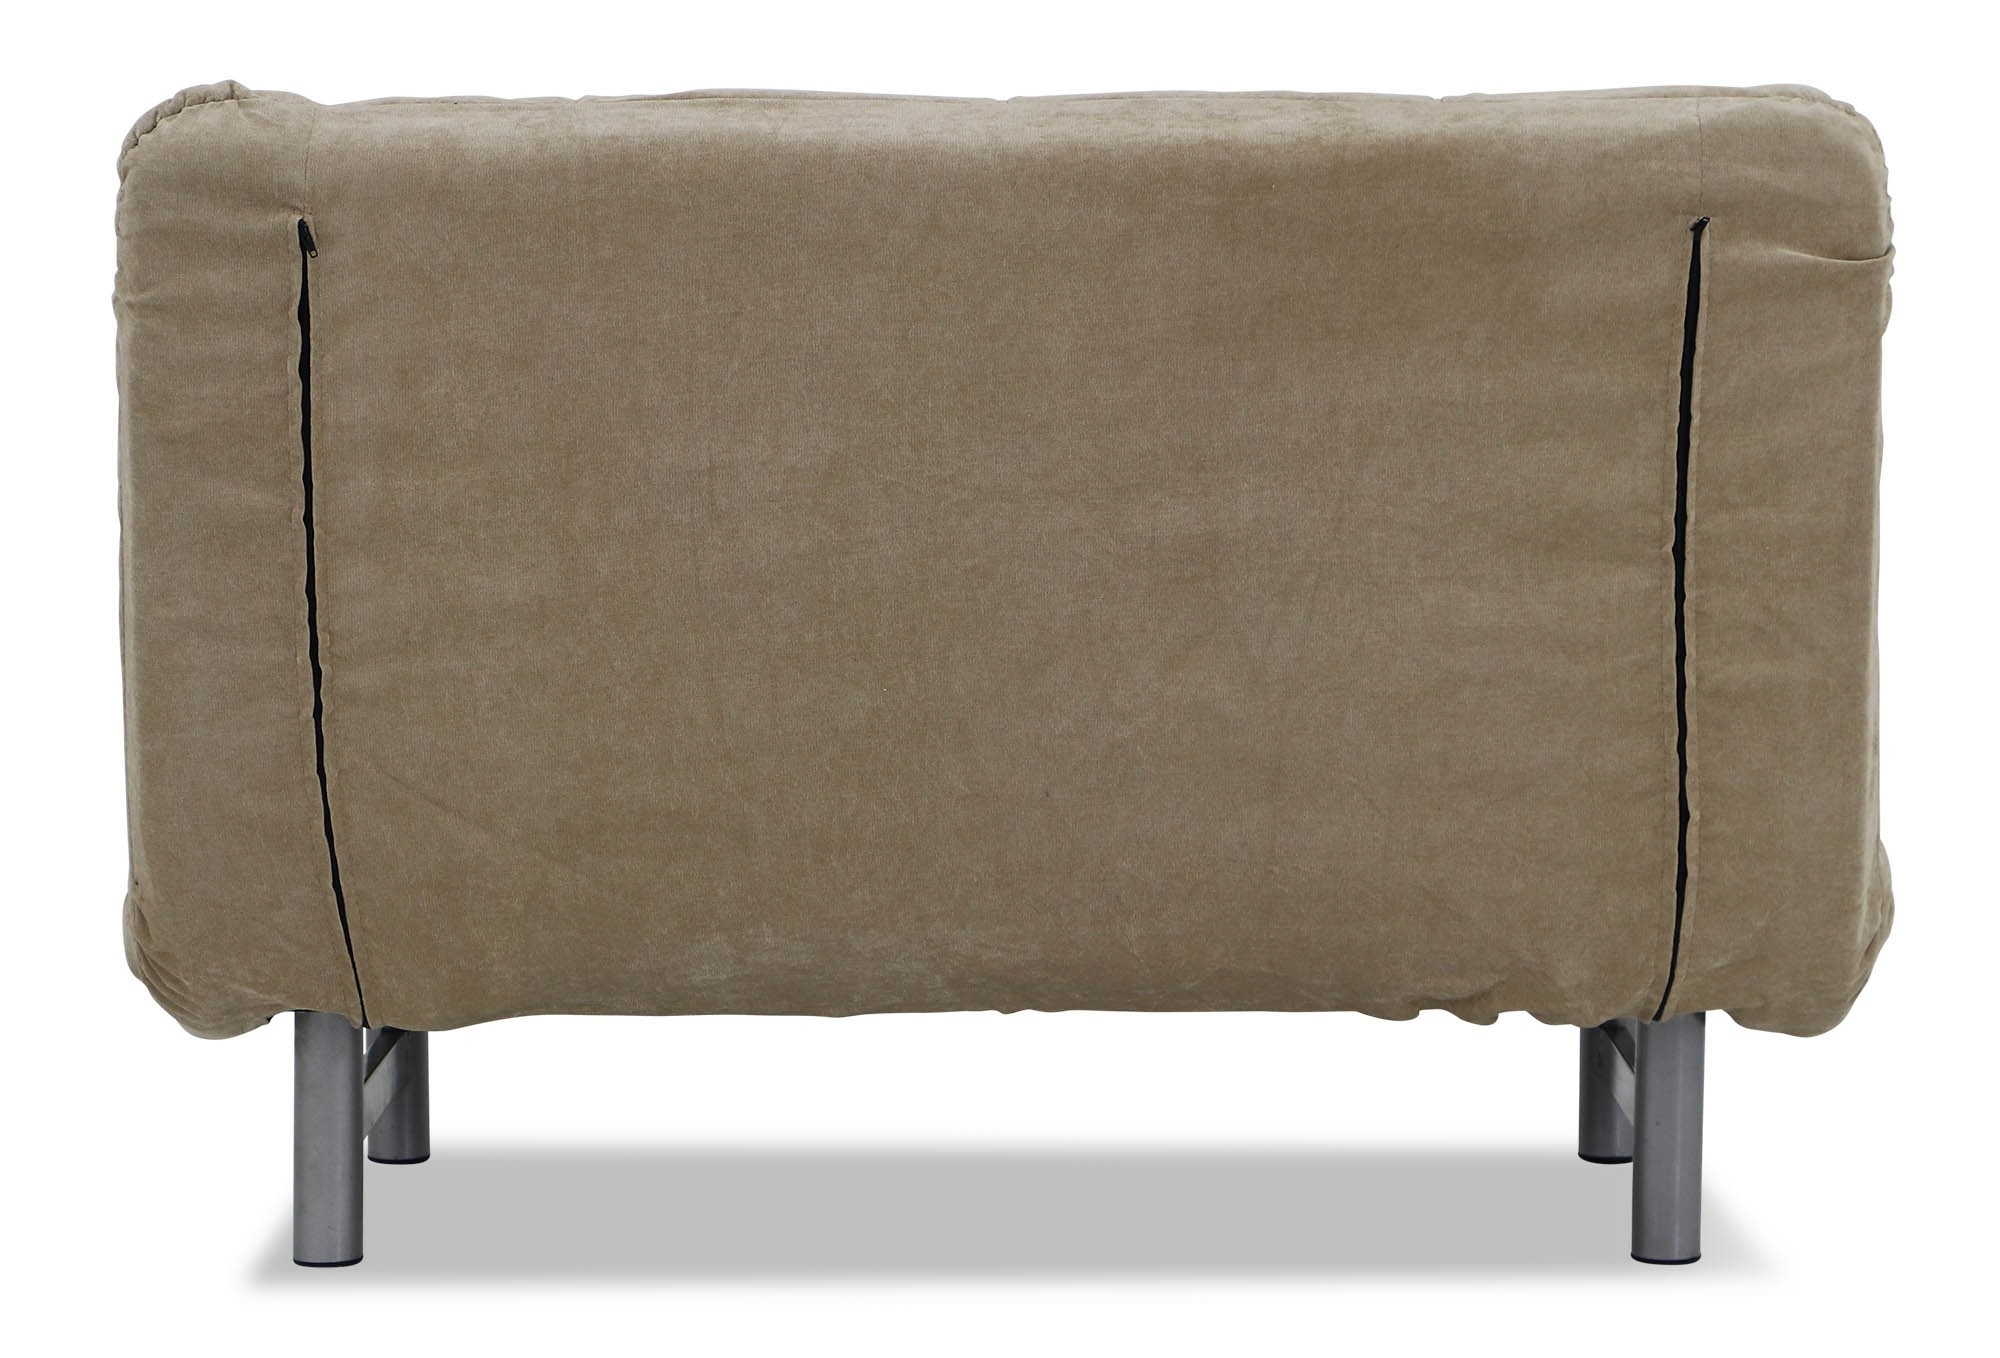 Ruud Sofa Bed Furniture Amp Home D 233 Cor Fortytwo